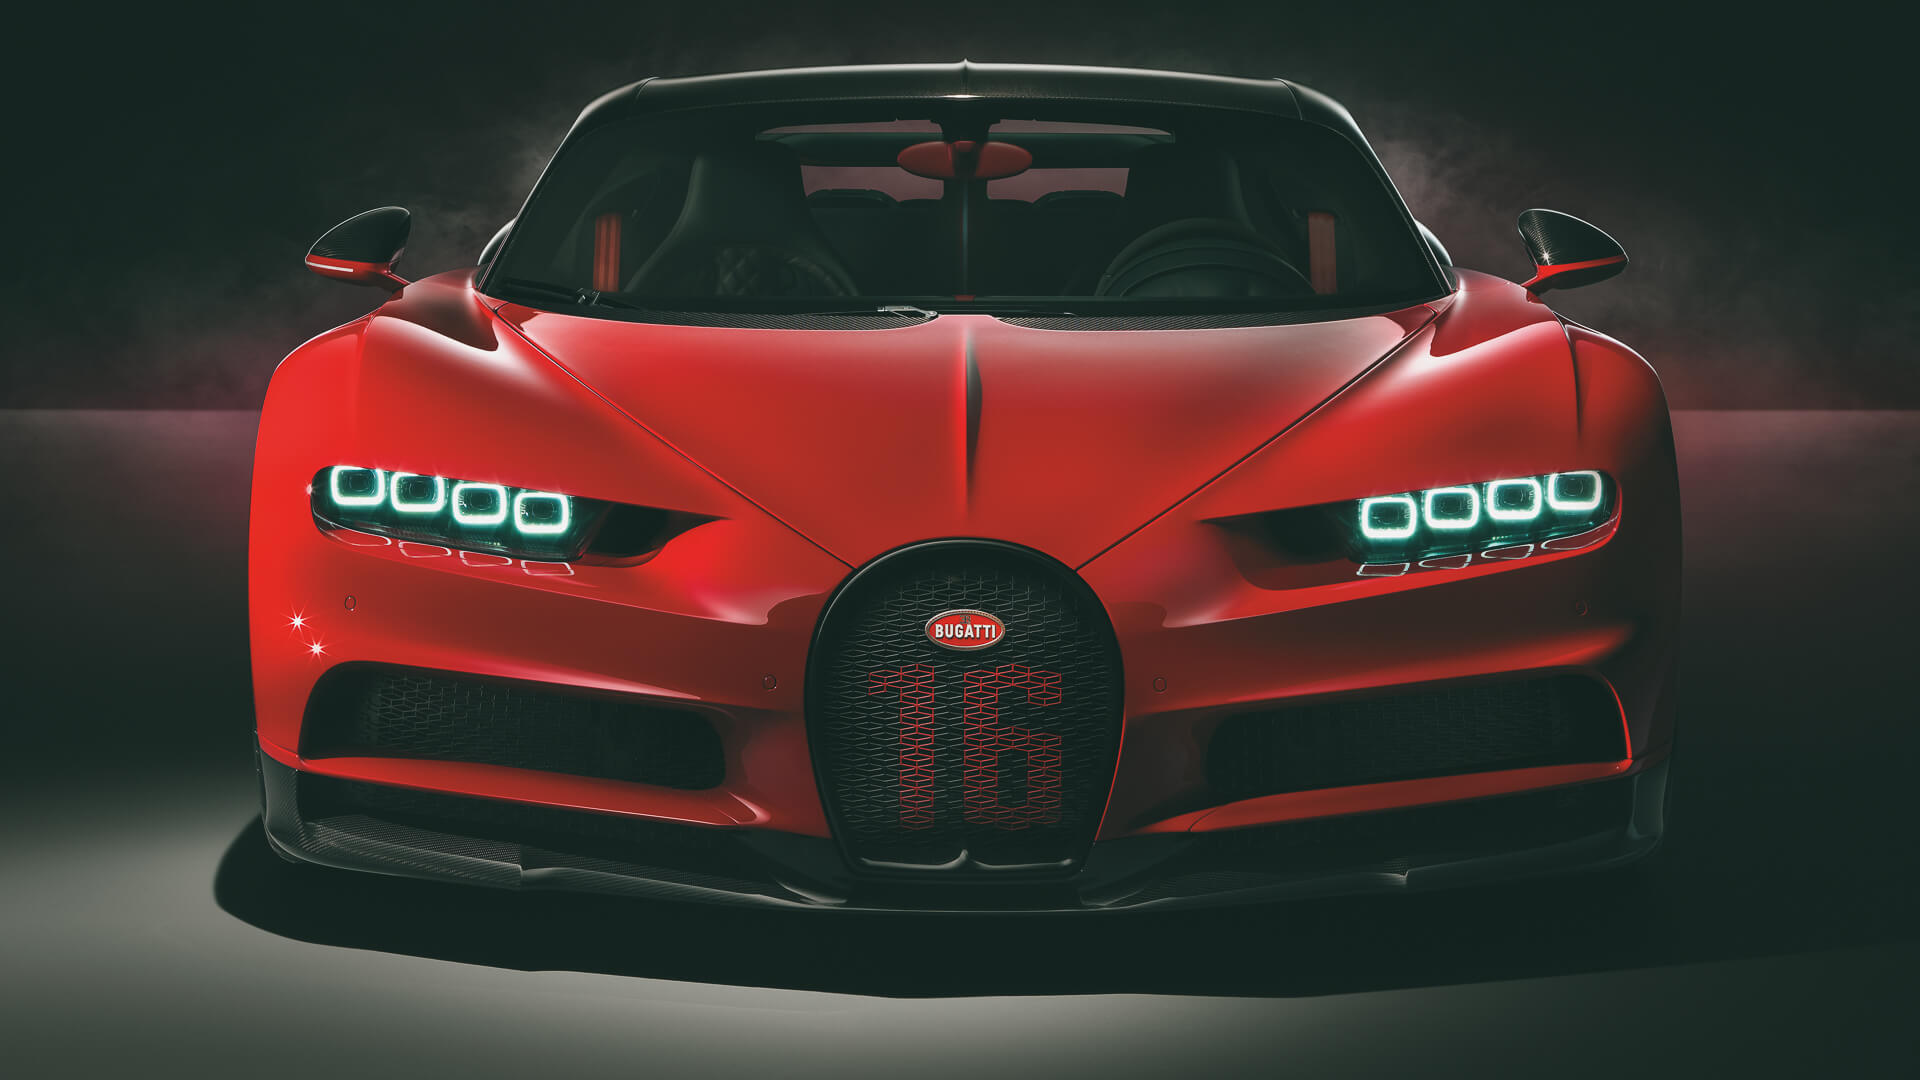 25 Fastest Cars in the World and Their Price Tags